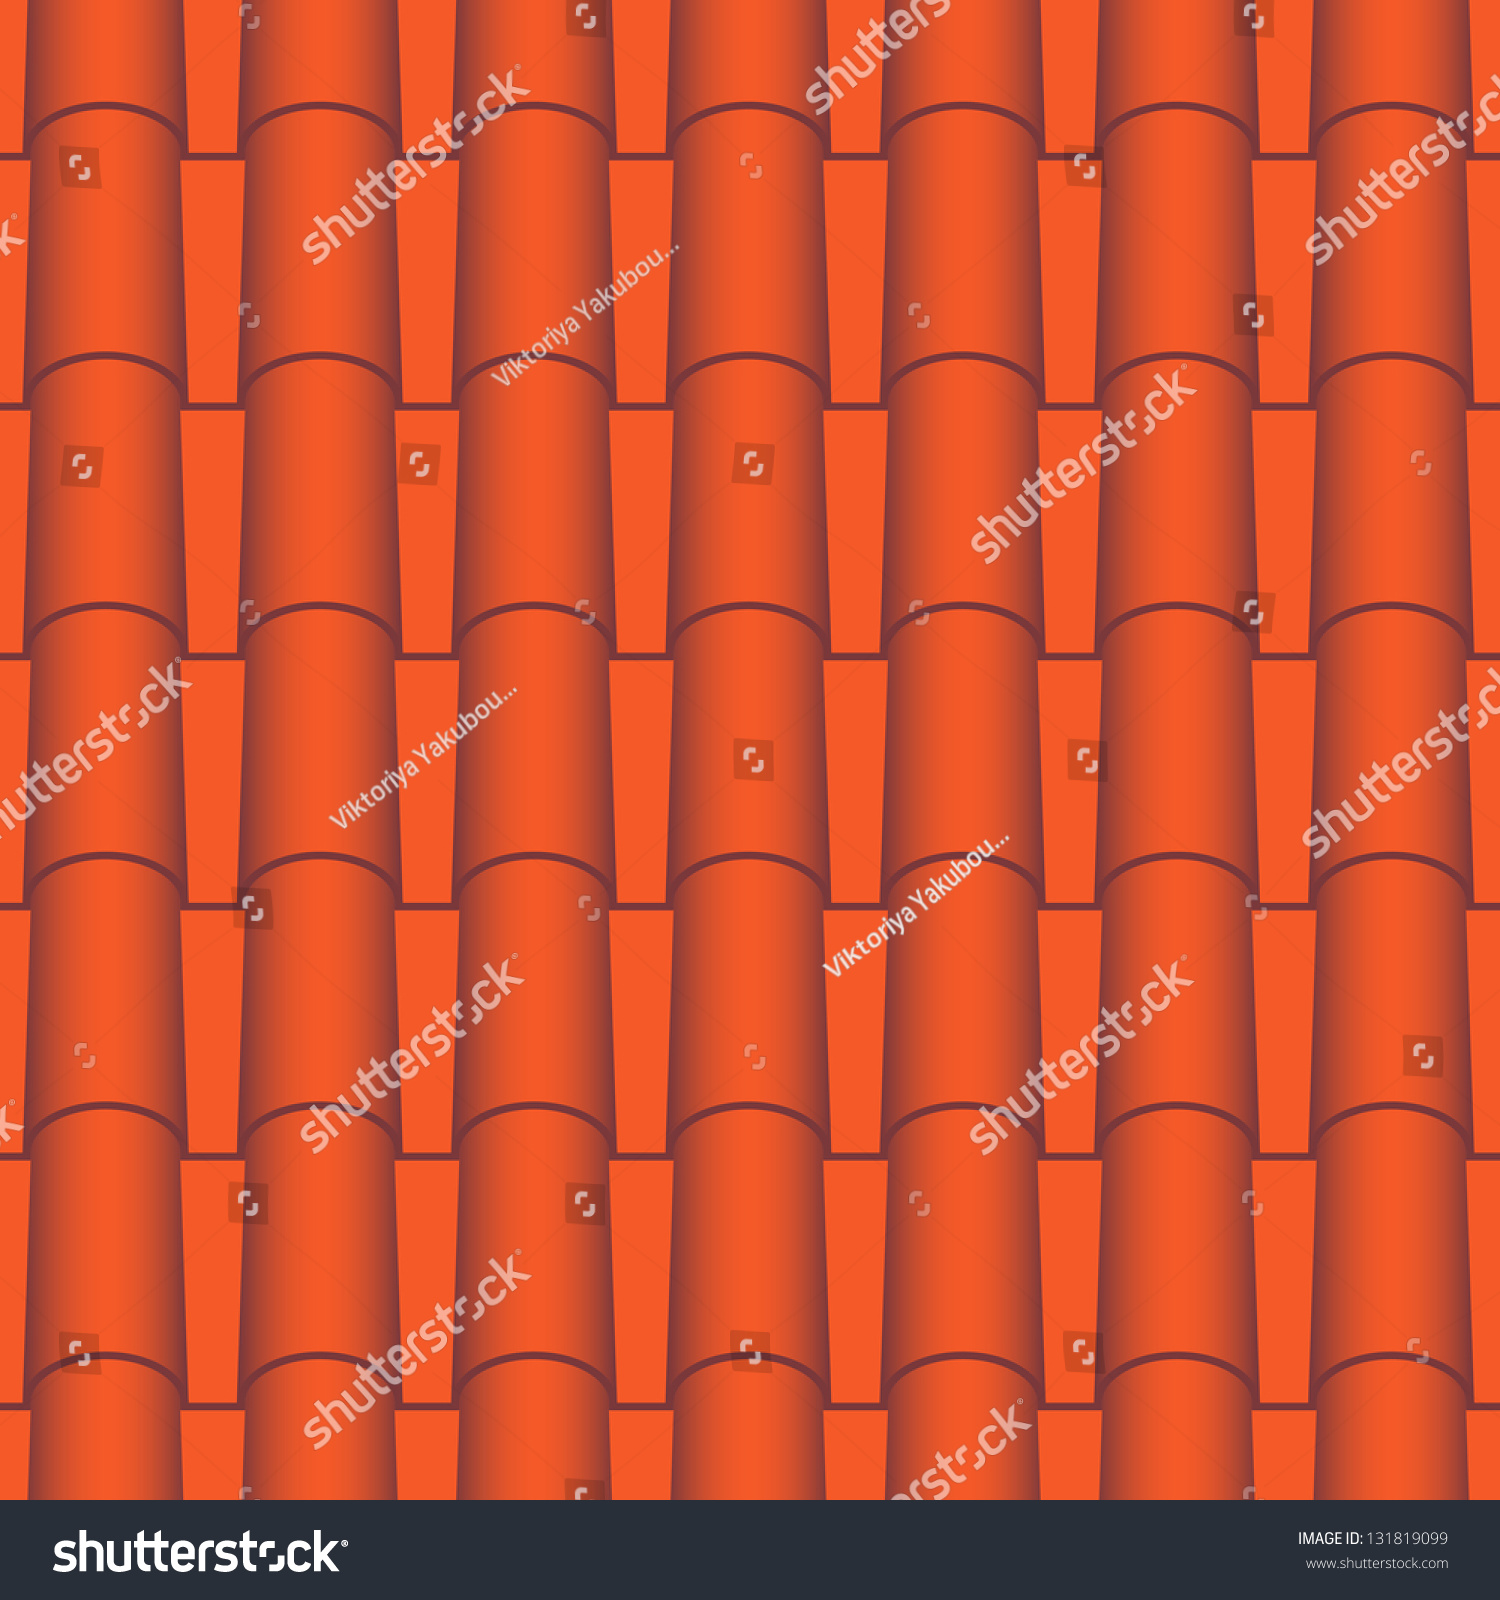 Red Roof Tiles Seamless Vector Texture 131819099